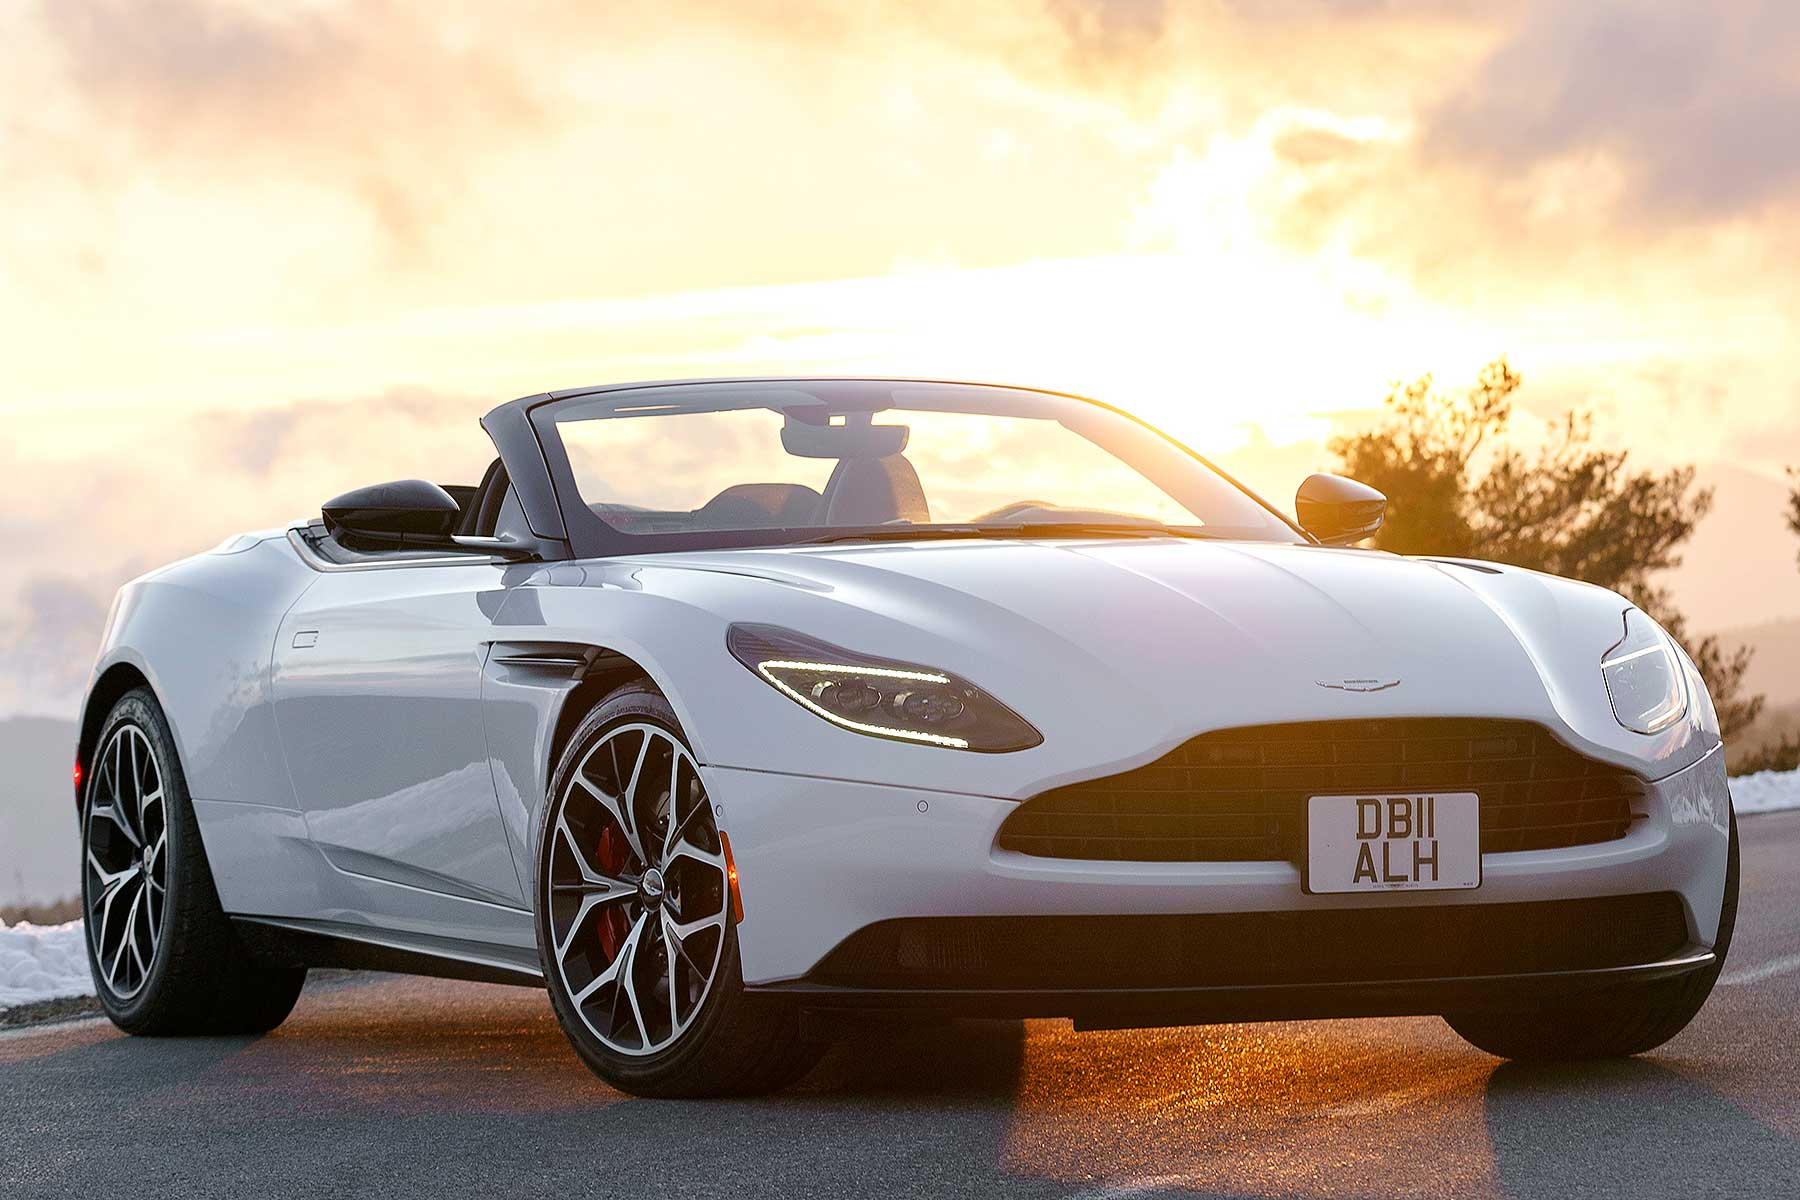 2018 Aston Martin Db11 Volante First Drive Review Its No Soft